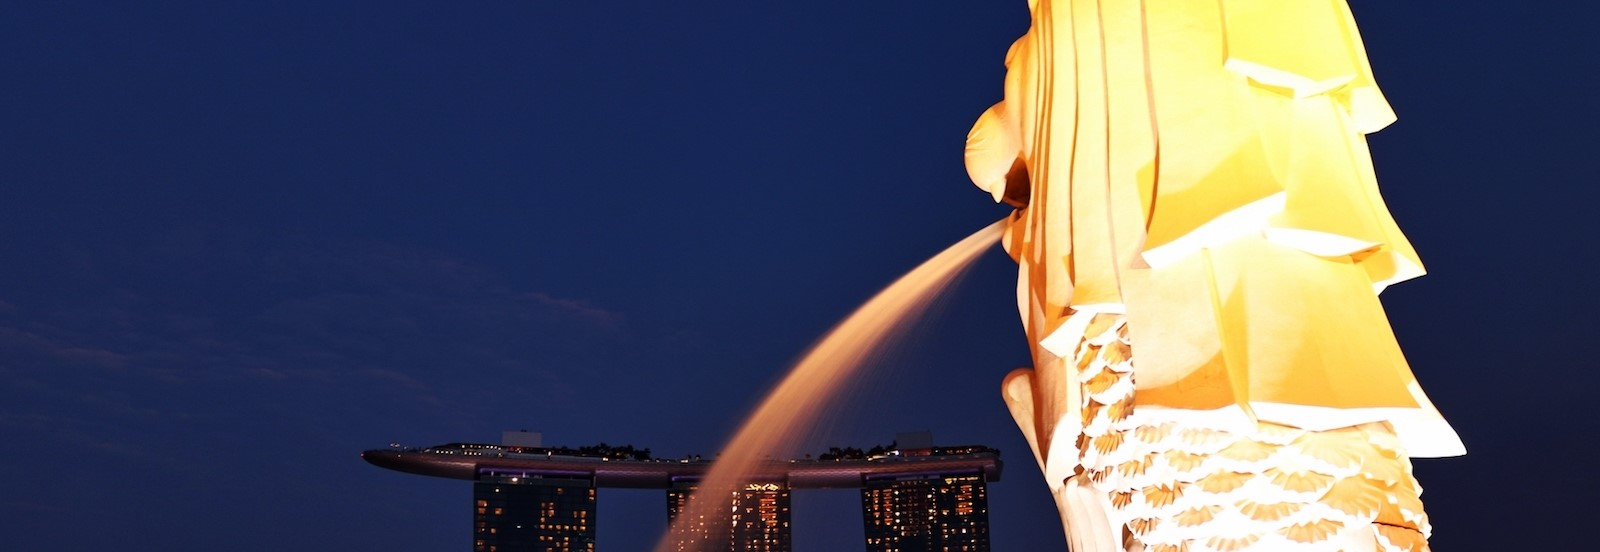 The Merlion in front of Marina Bay Sands, Singapore (Photo: Ferry Octavian/Flickr)